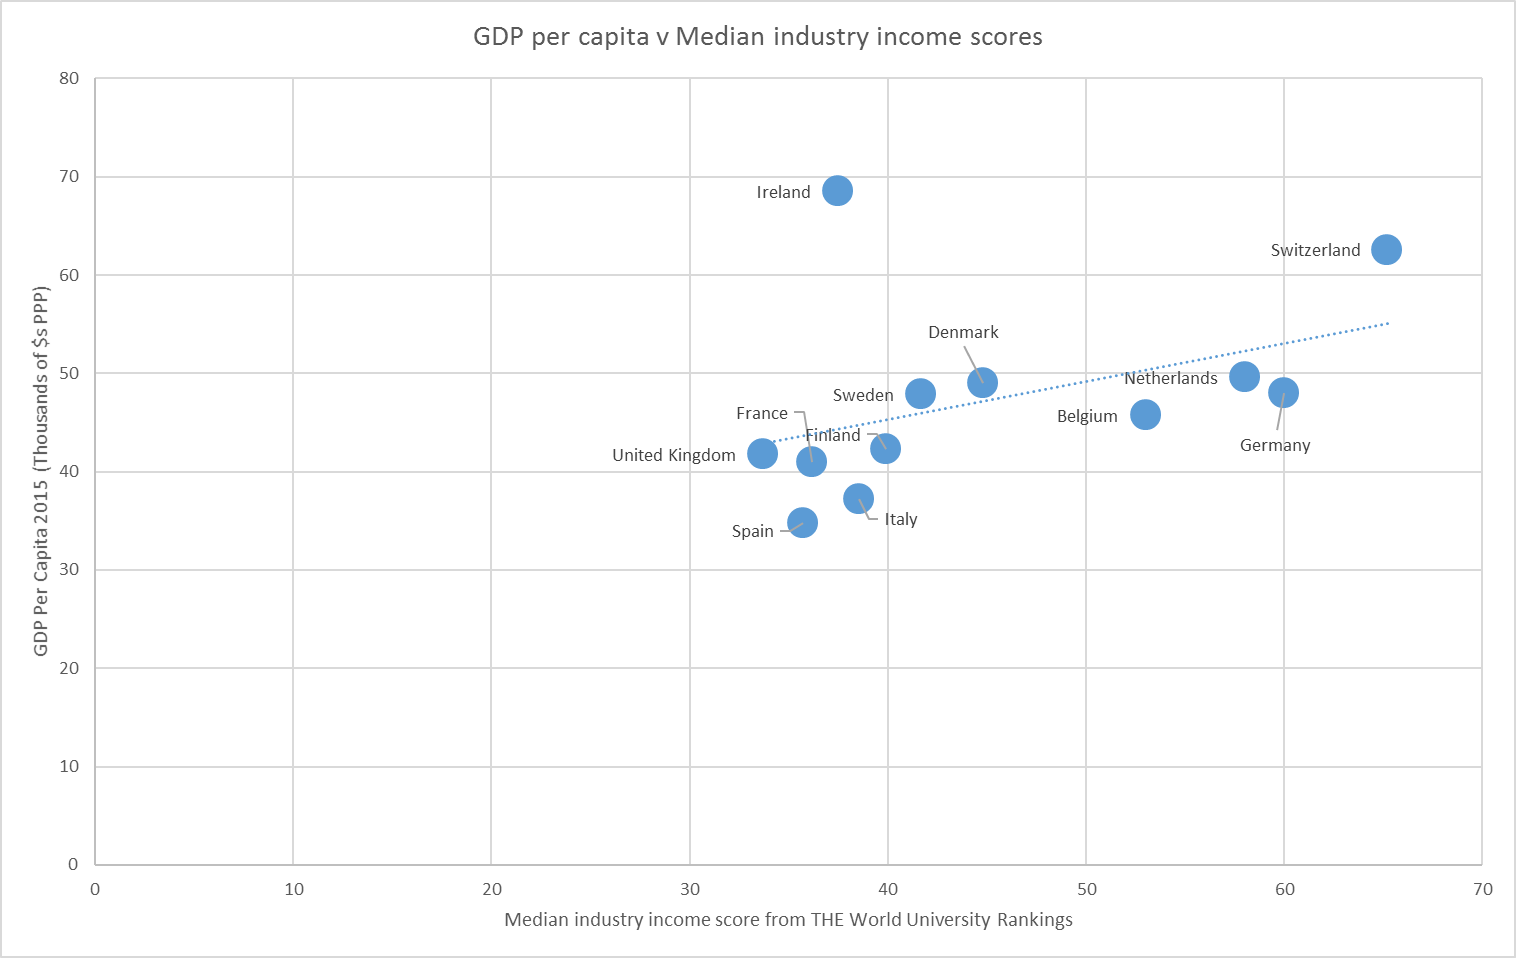 Median industry income scores compared with GDP per capita